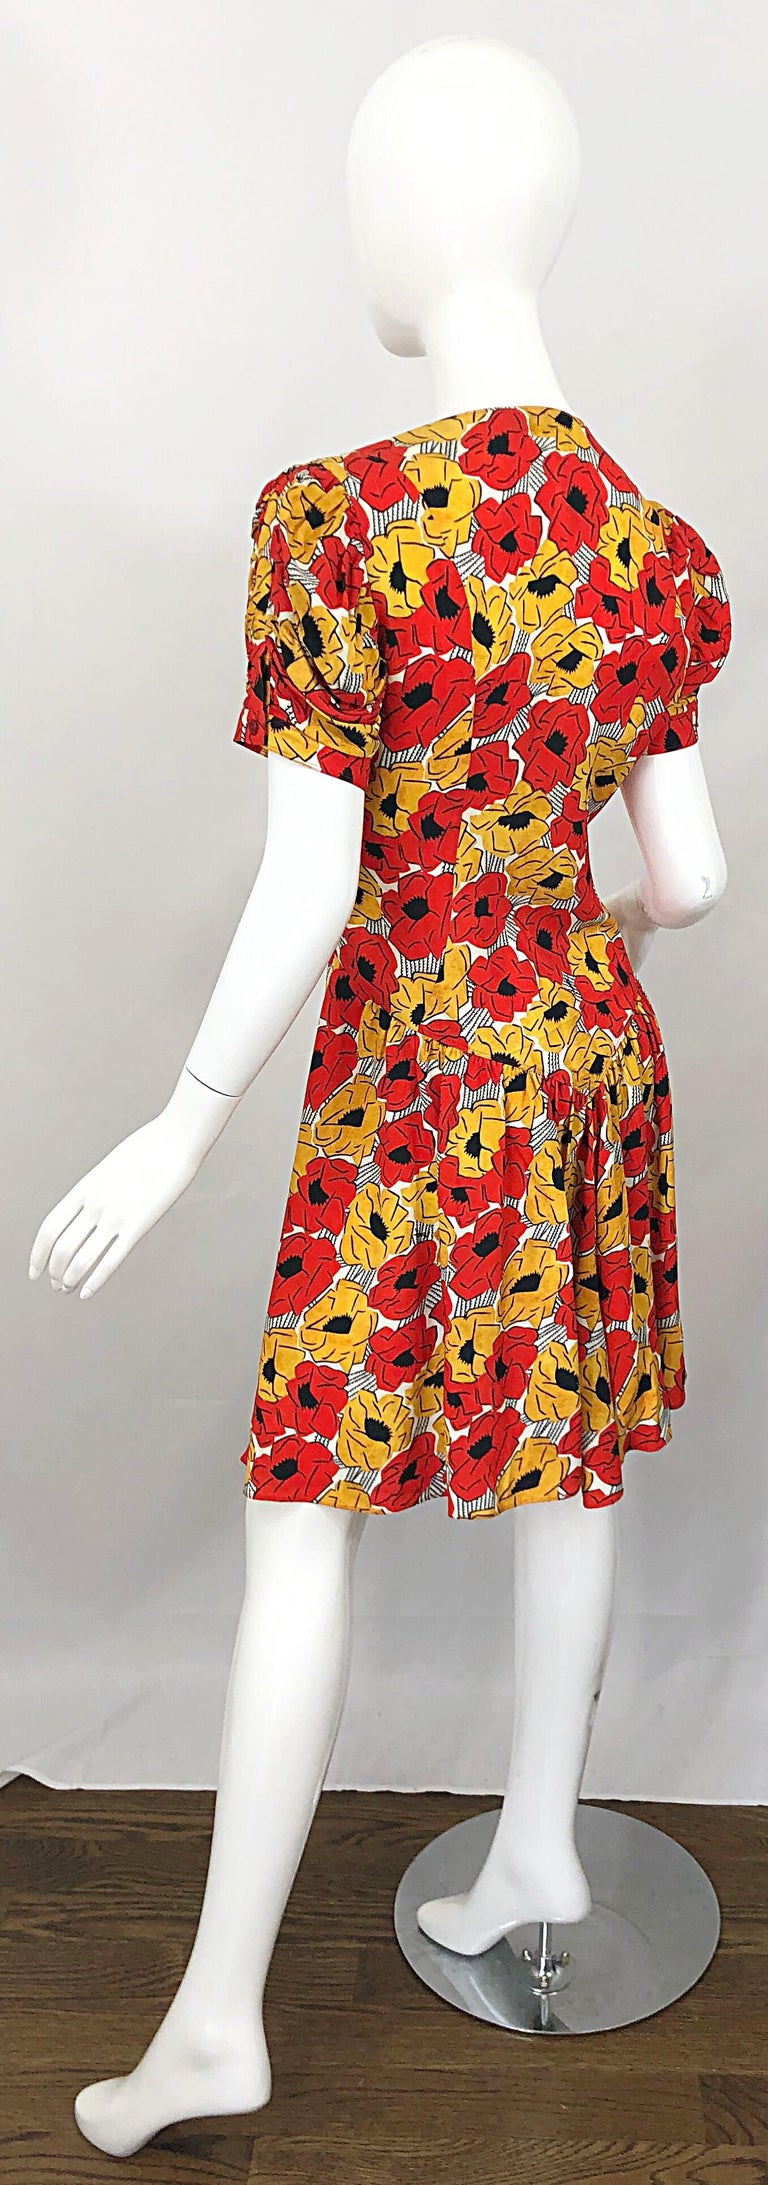 Yves Saint Laurent YSL Size 42 / 10 Yellow + Red Poppy Print Drop Waist Dress For Sale 9